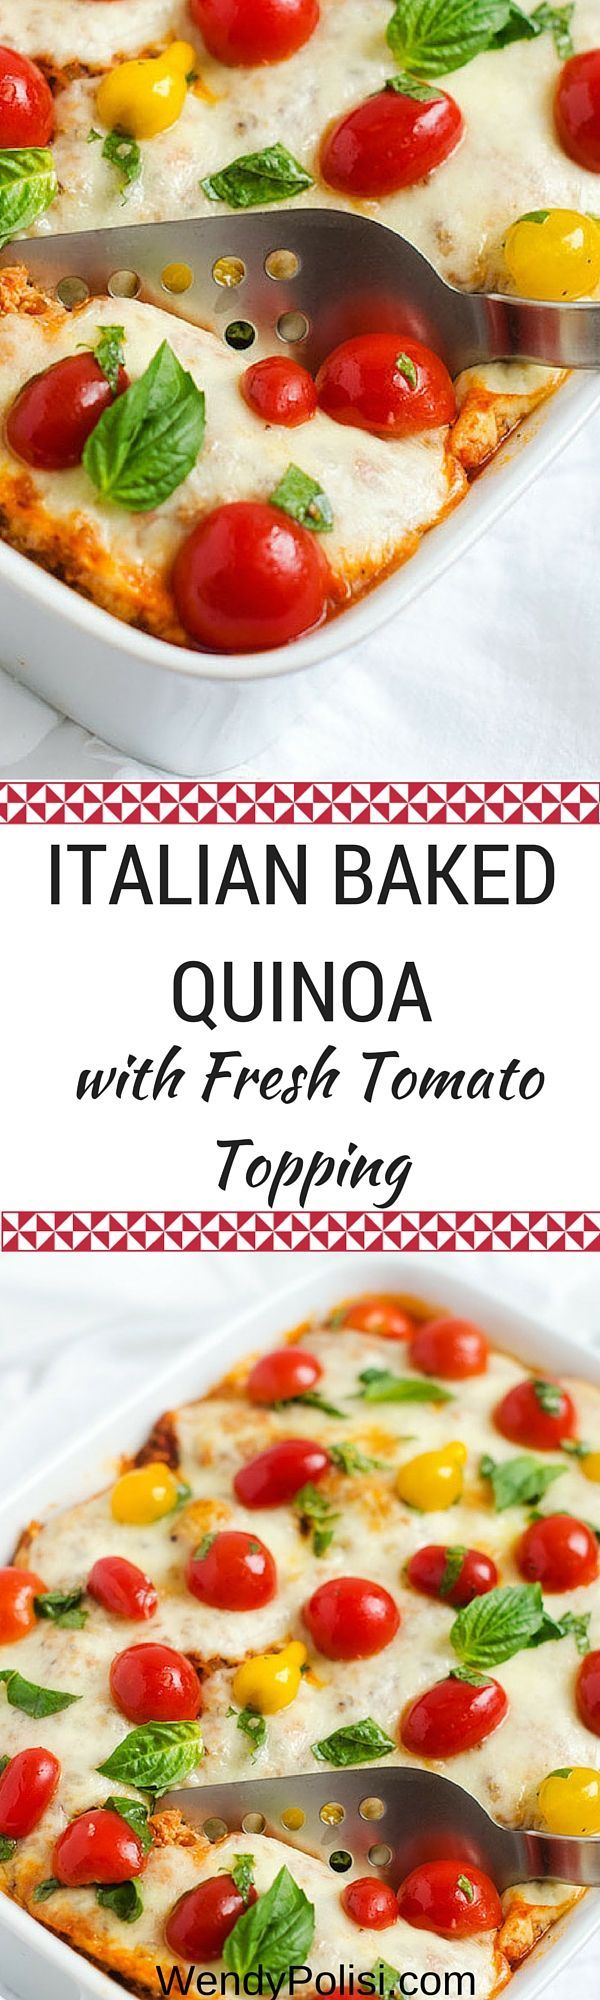 Italian Baked Quinoa with Fresh Tomato Topping - This gluten free casserole can easily be made vegetarian.